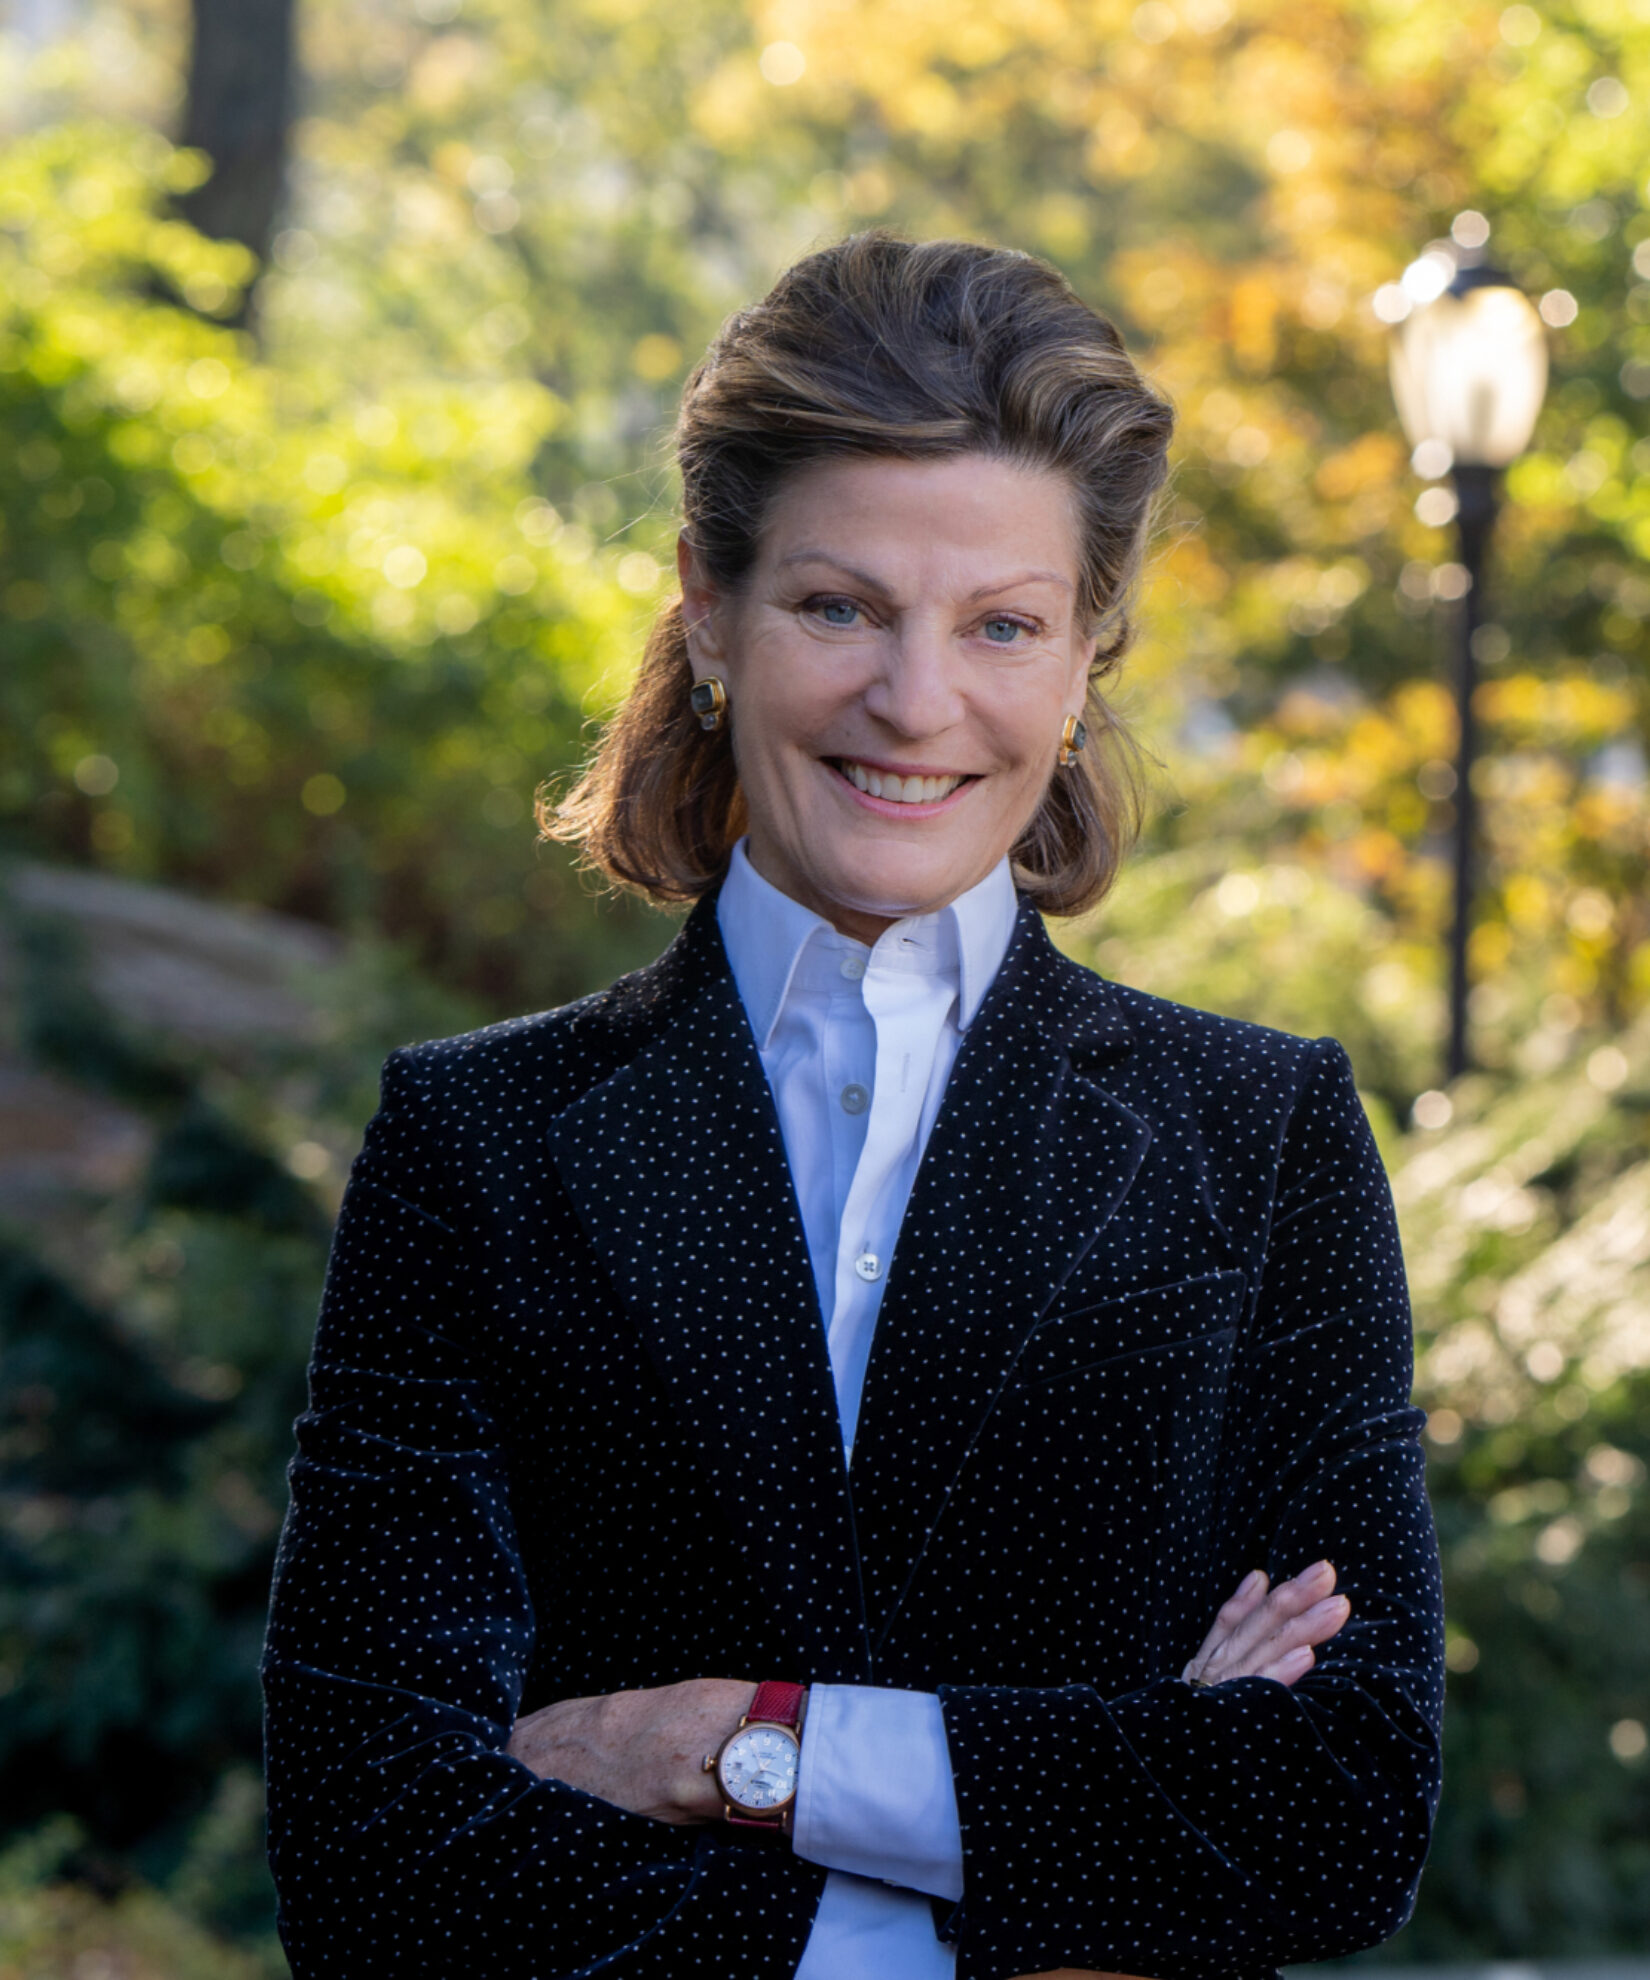 Betsy Smith pictured in the park in summer